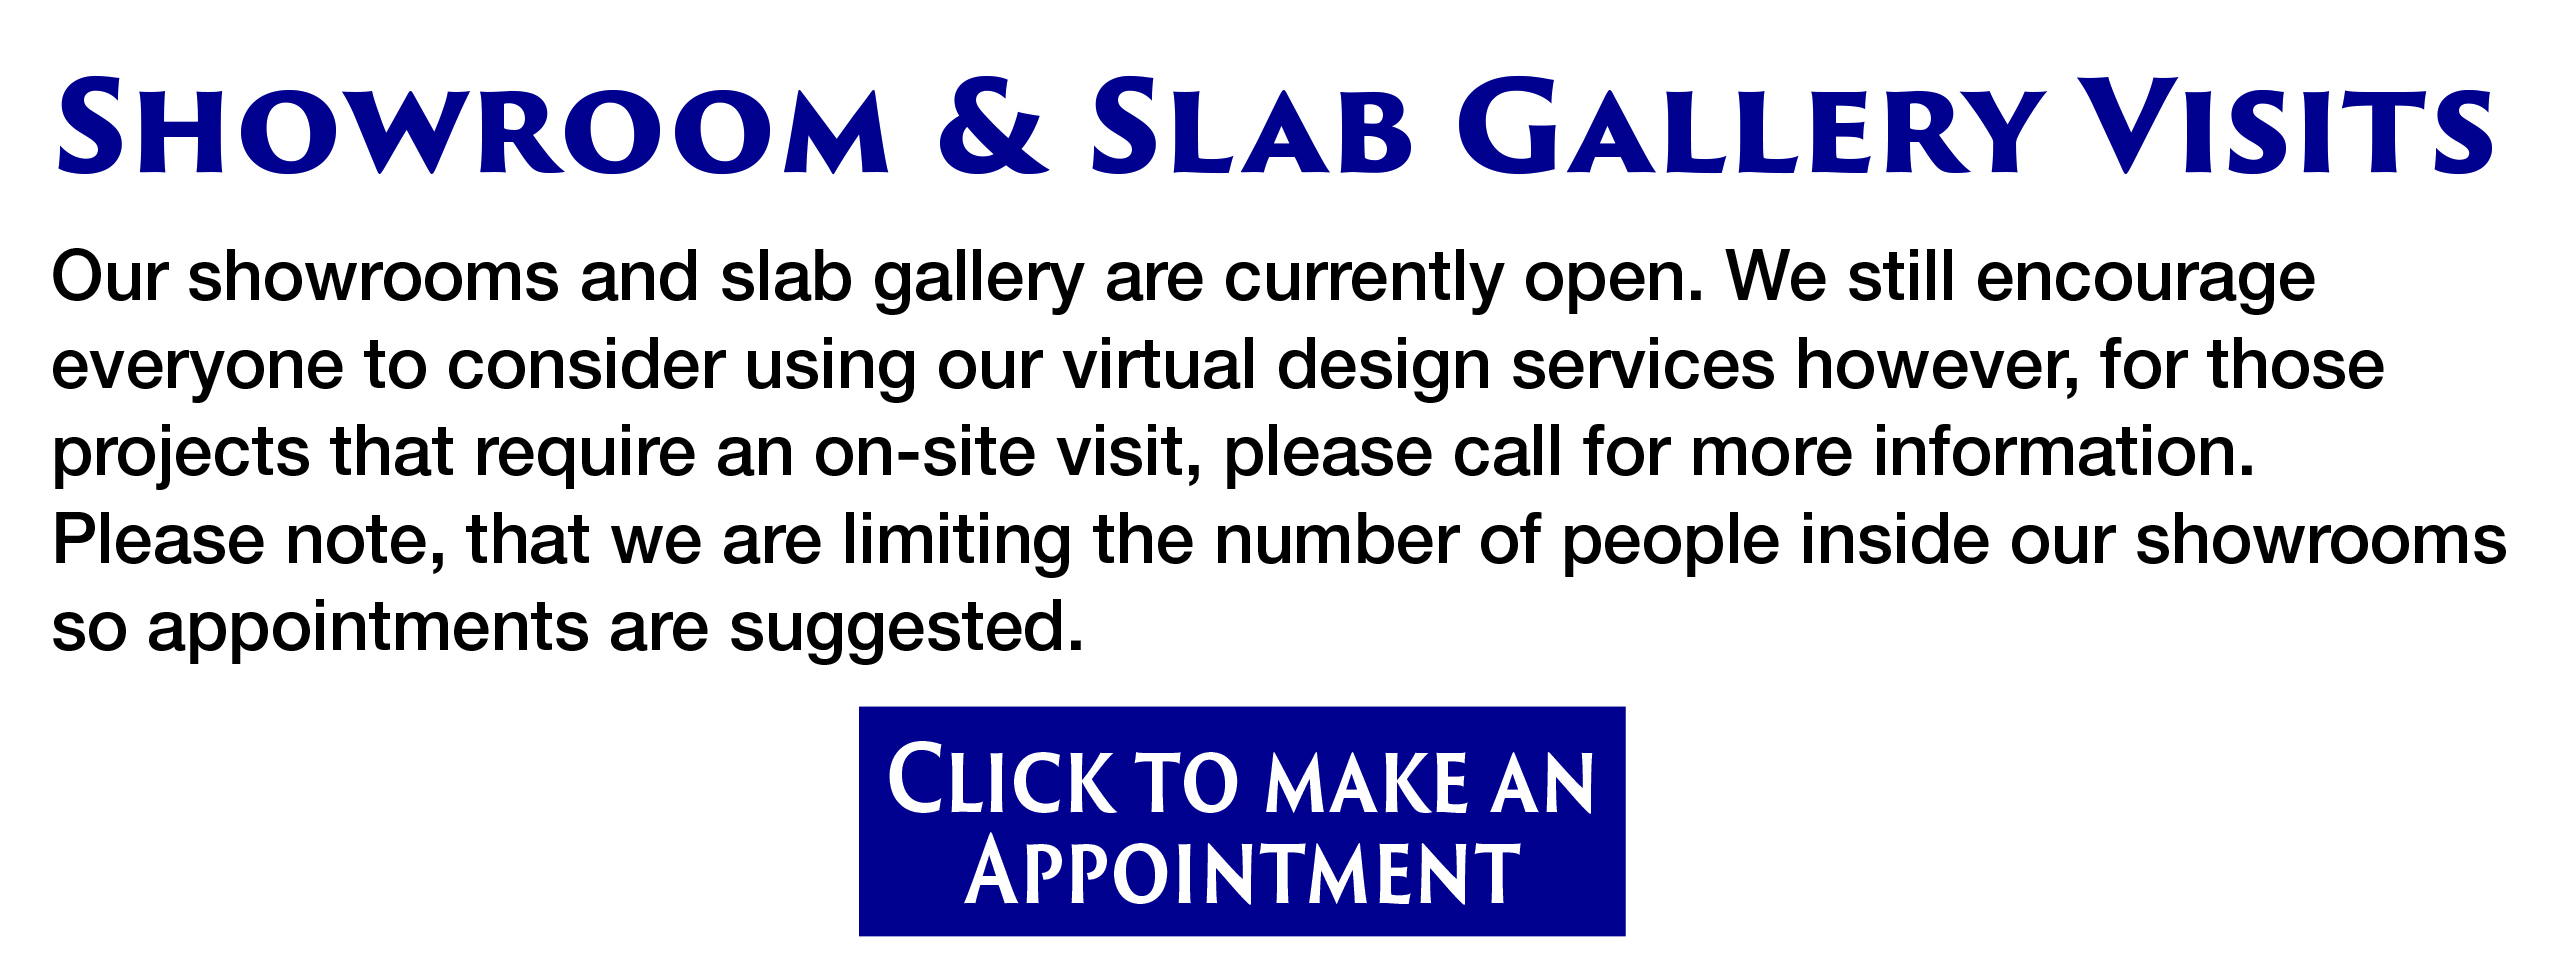 Showroom & Slab Gallery Visits